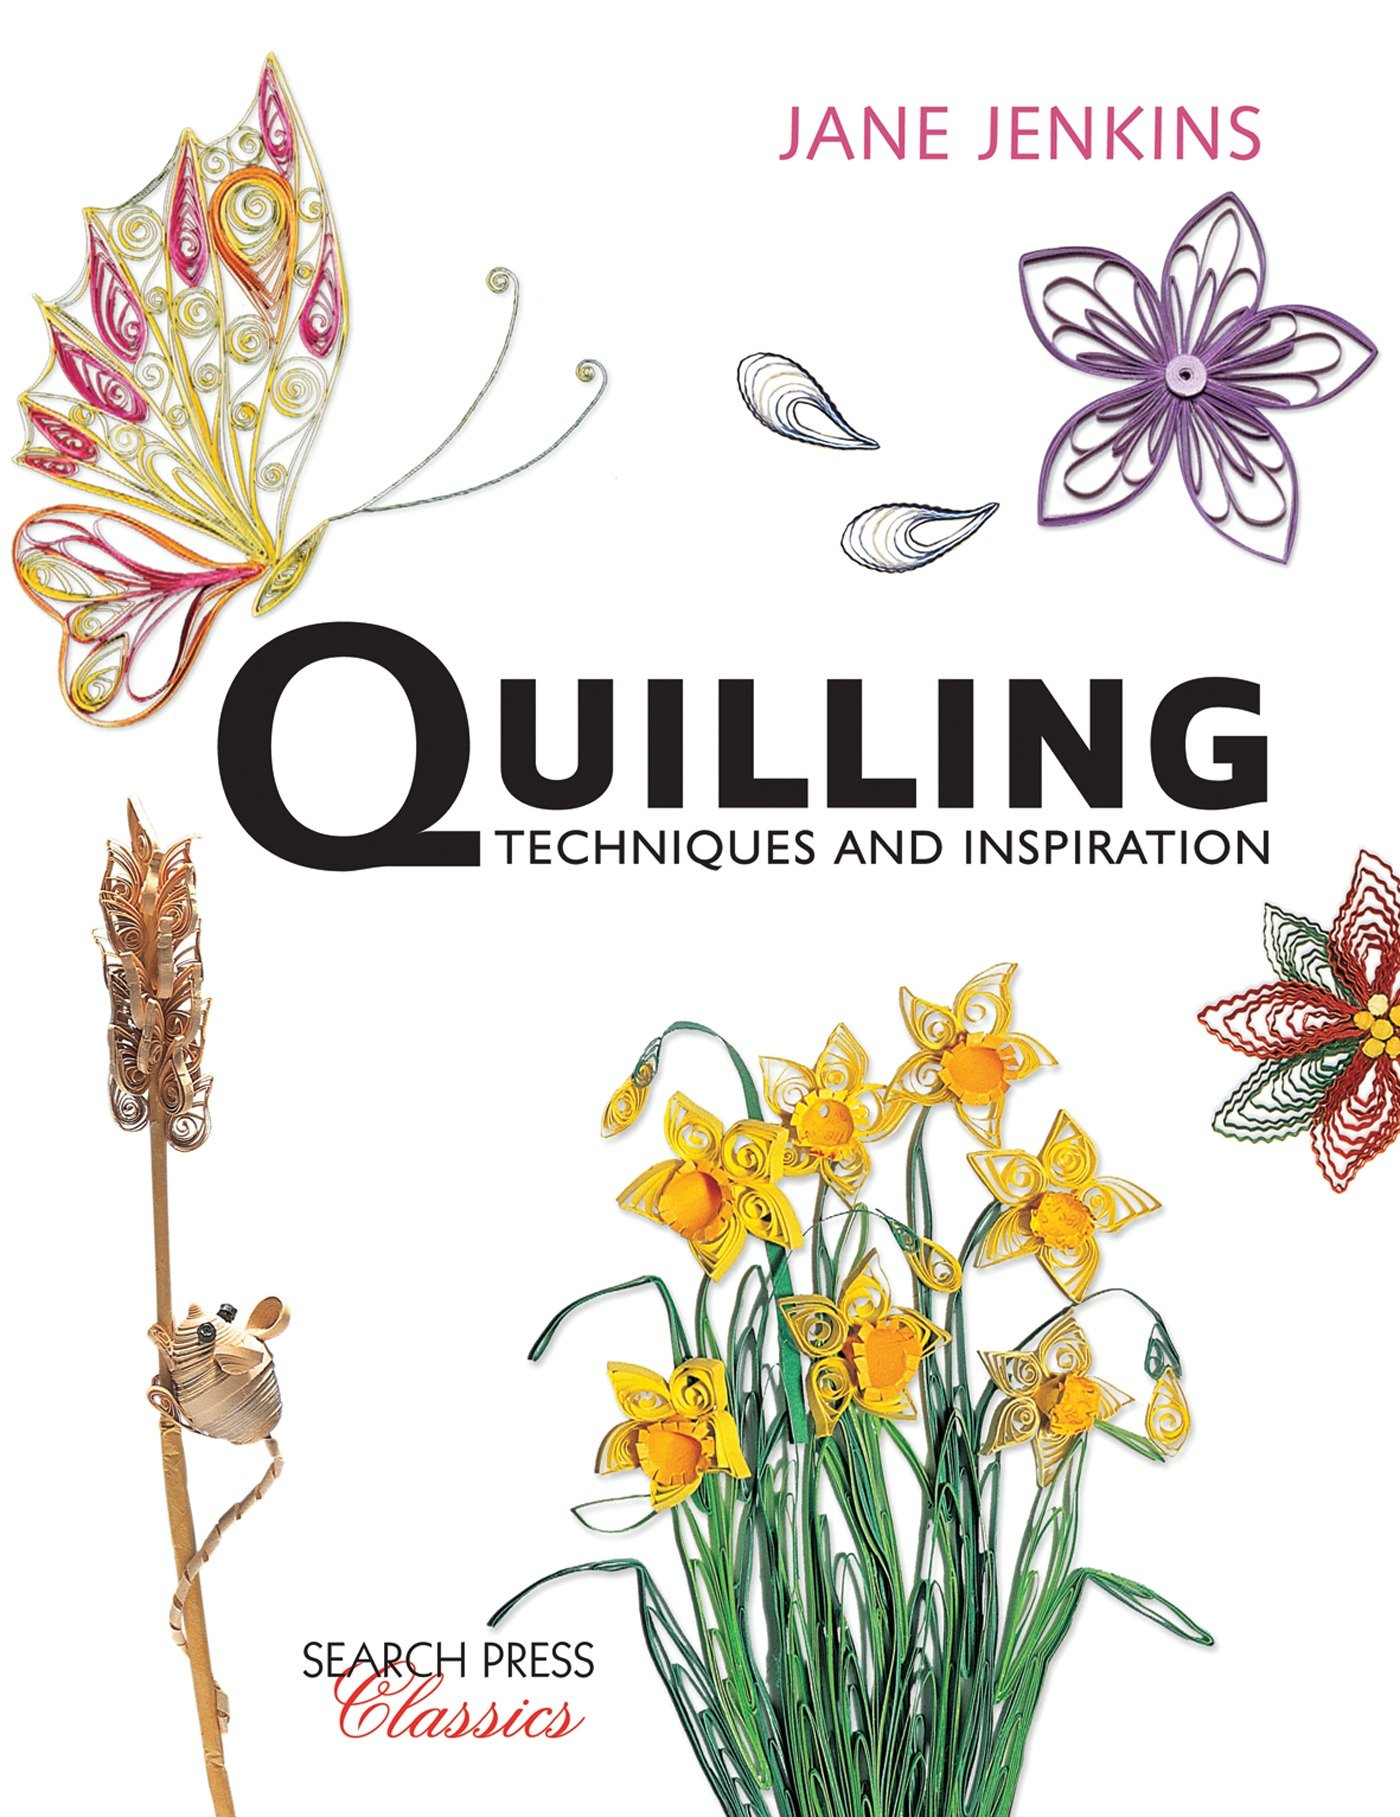 Quilling: Techniques and Inspiration: Re-issue (Search Press Classics)